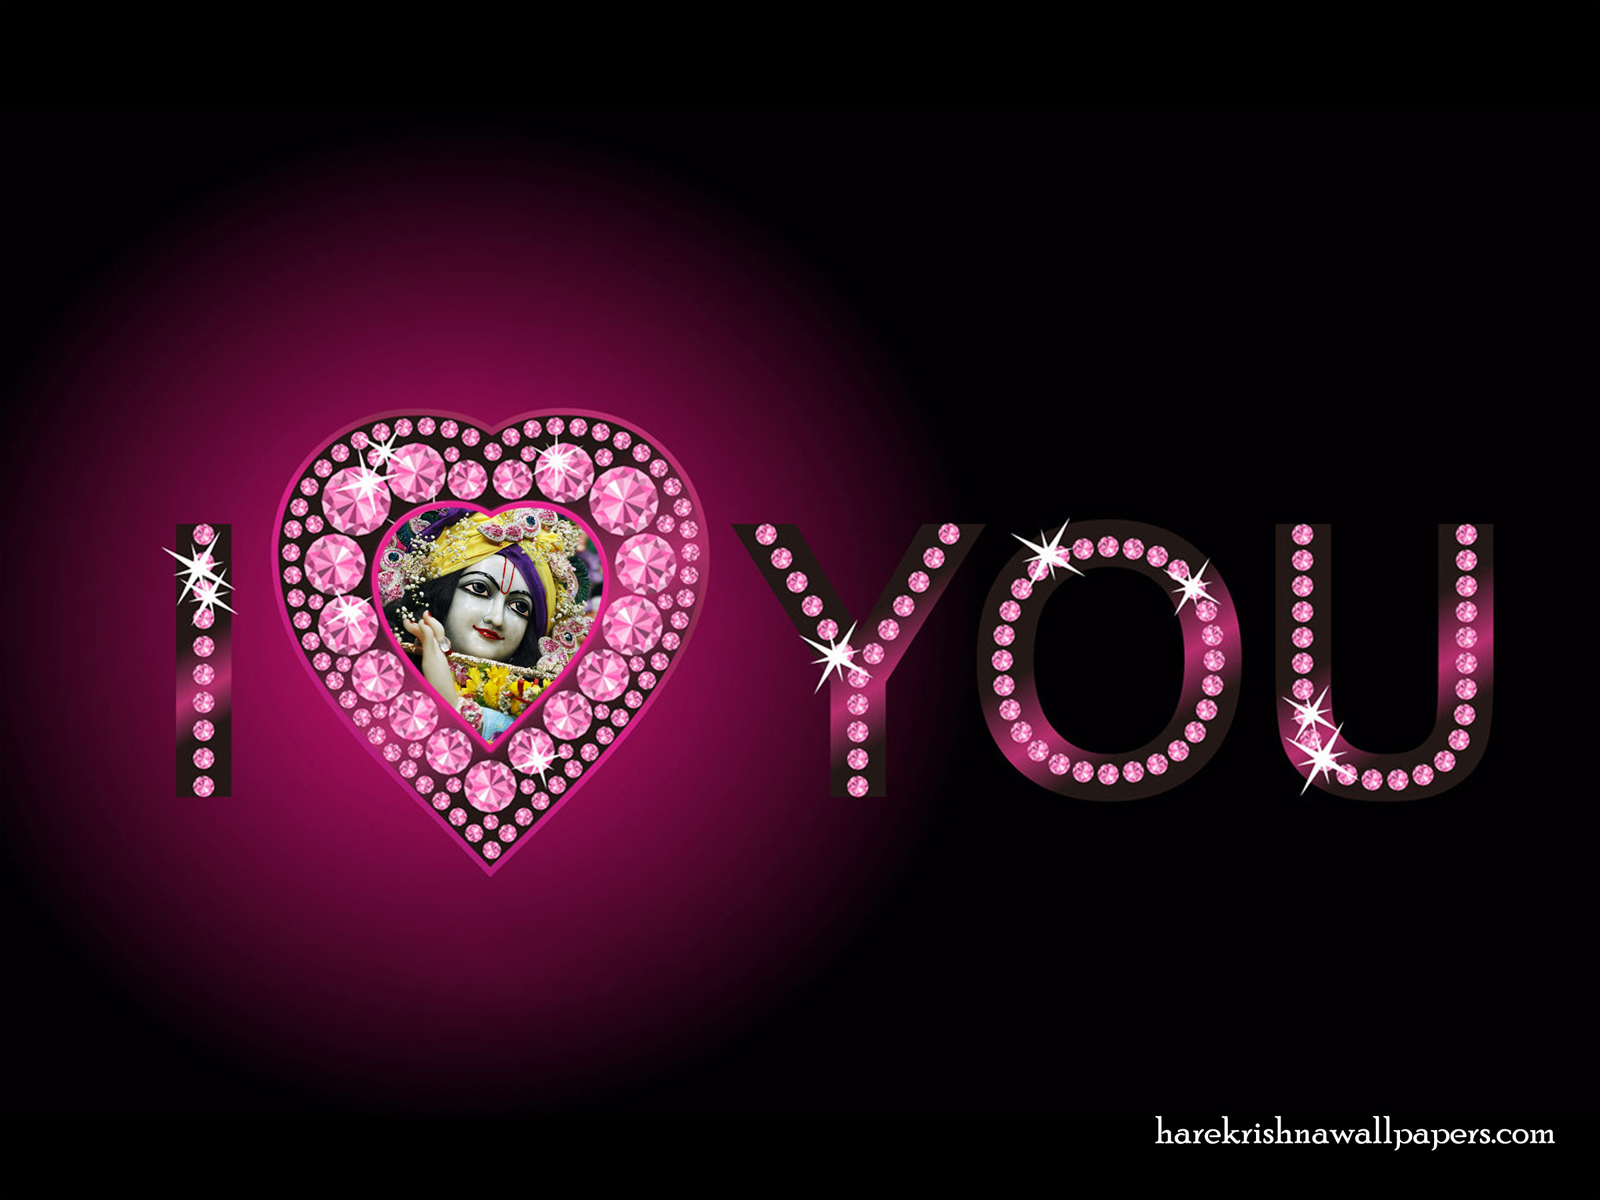 I Love You Gopinath Wallpaper (002) Size1600x1200 Download